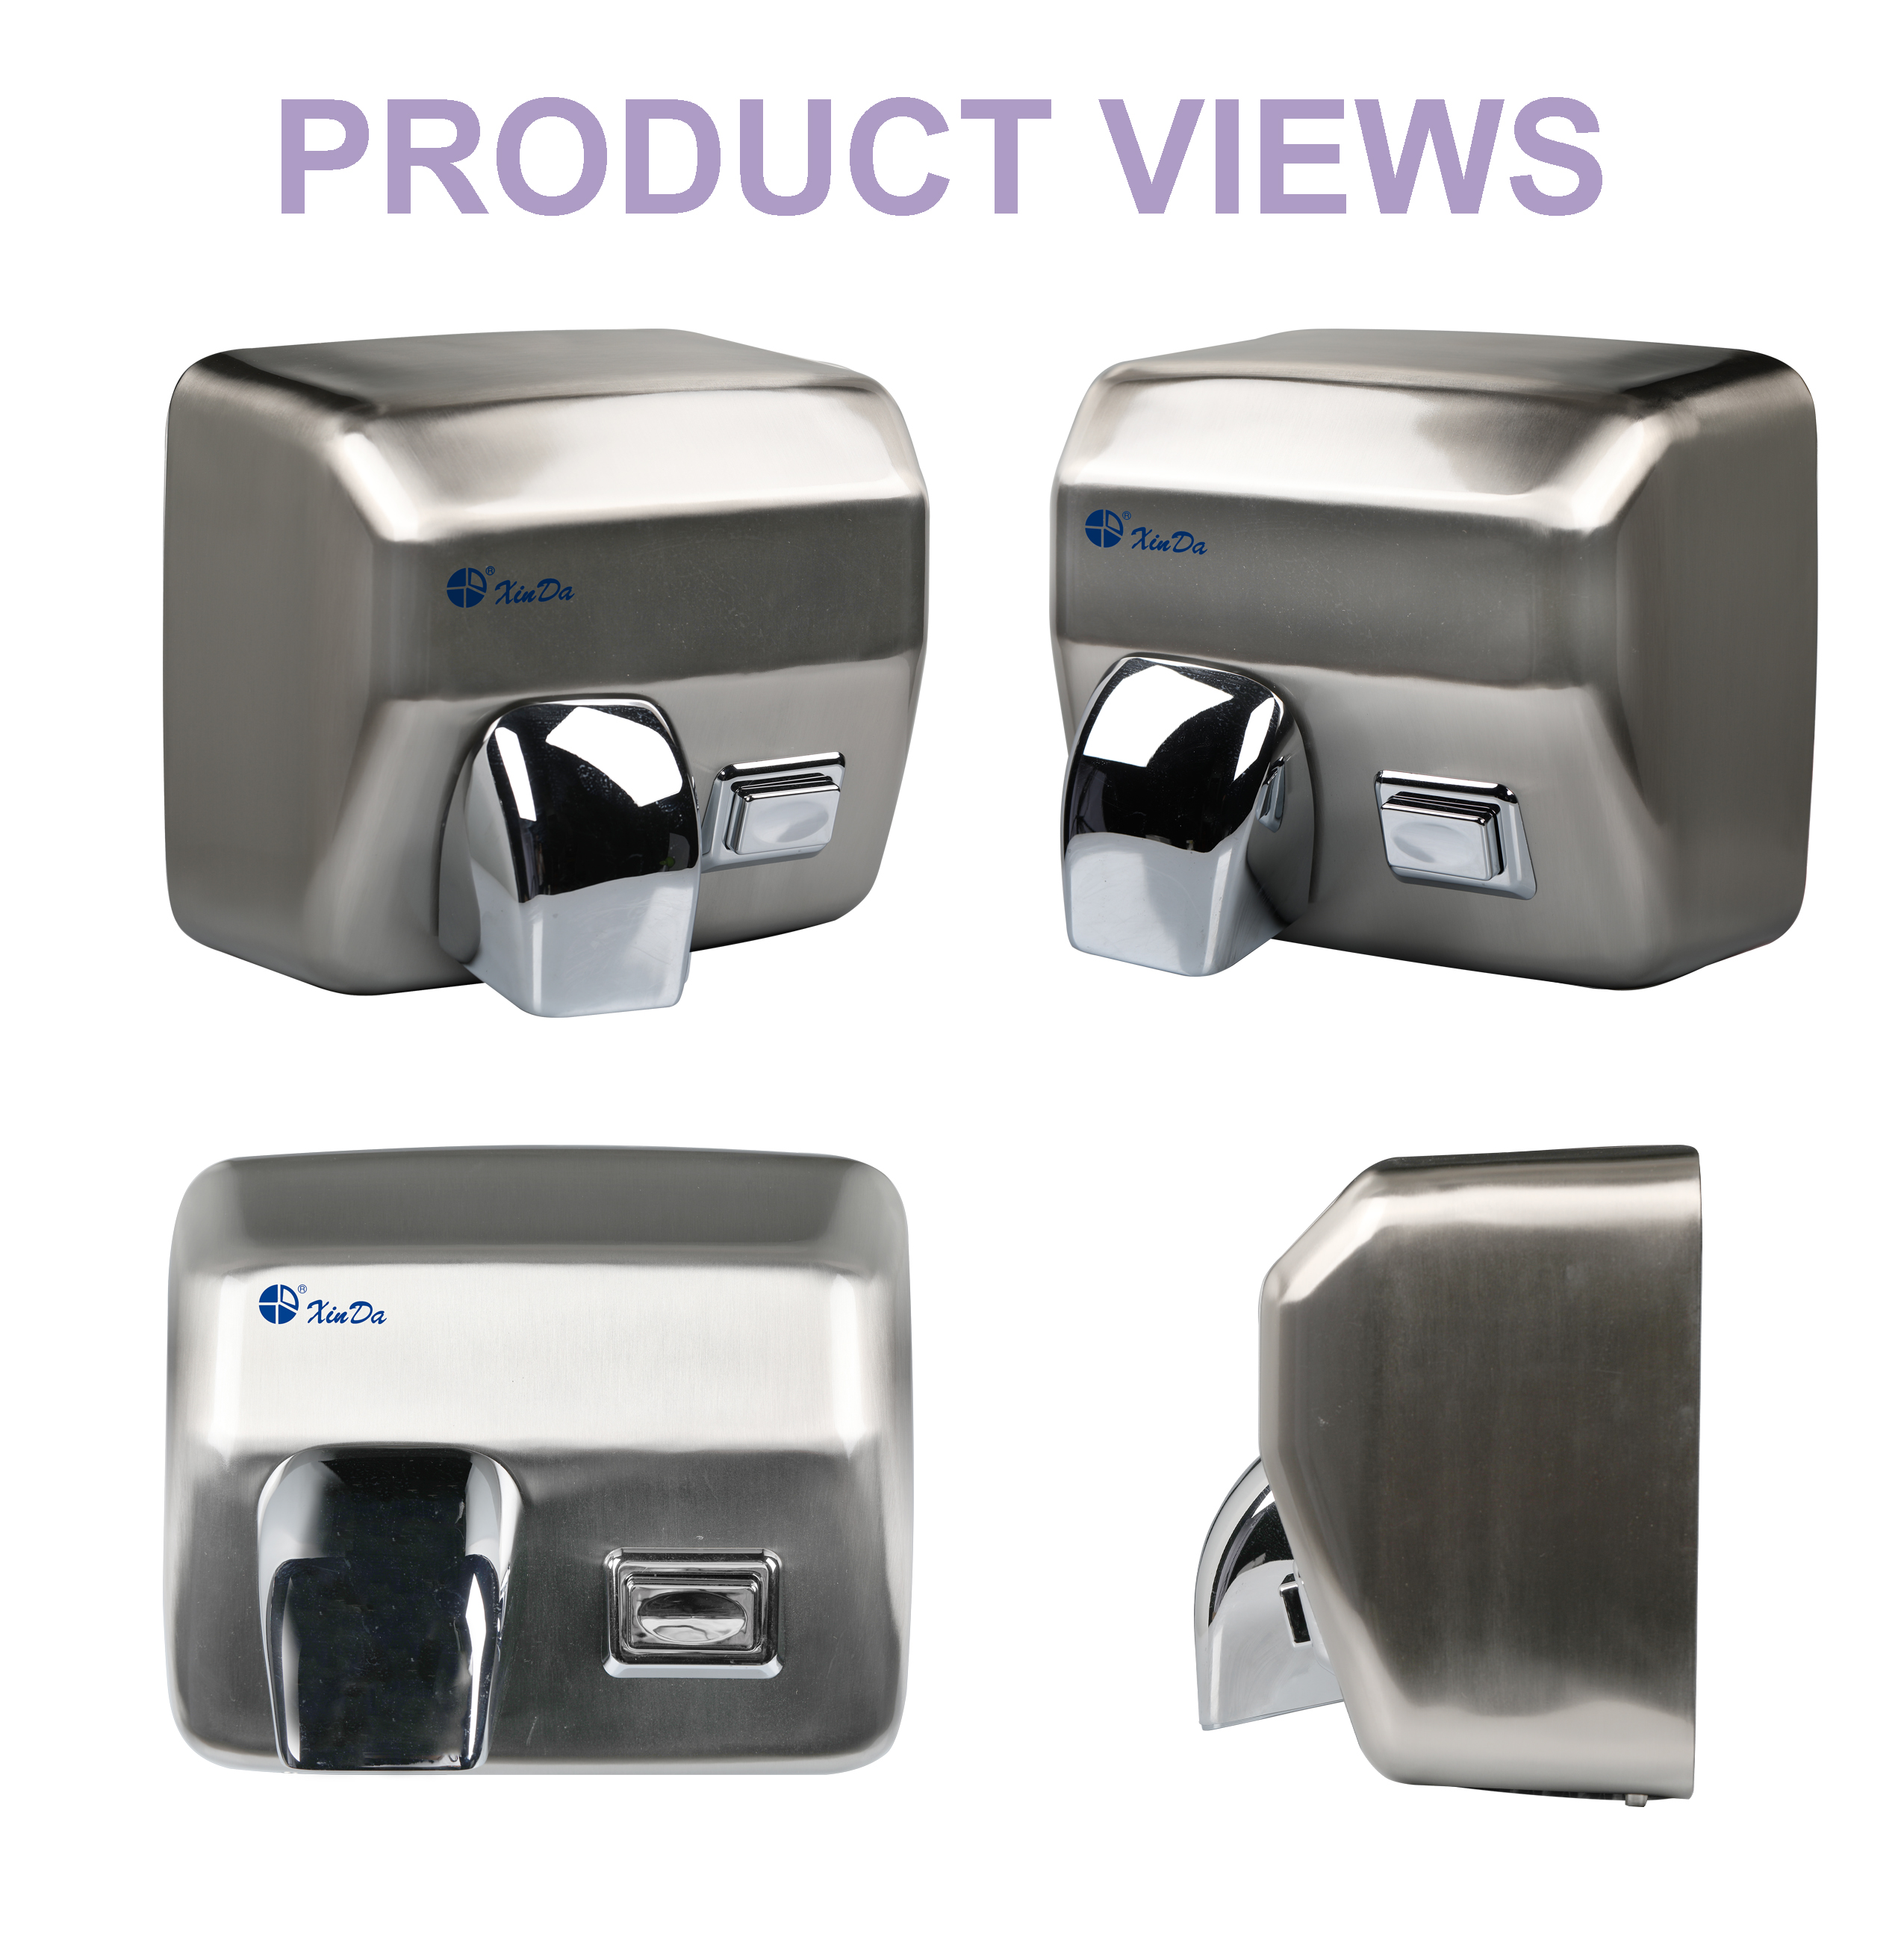 Stainless steel push button hand dryer